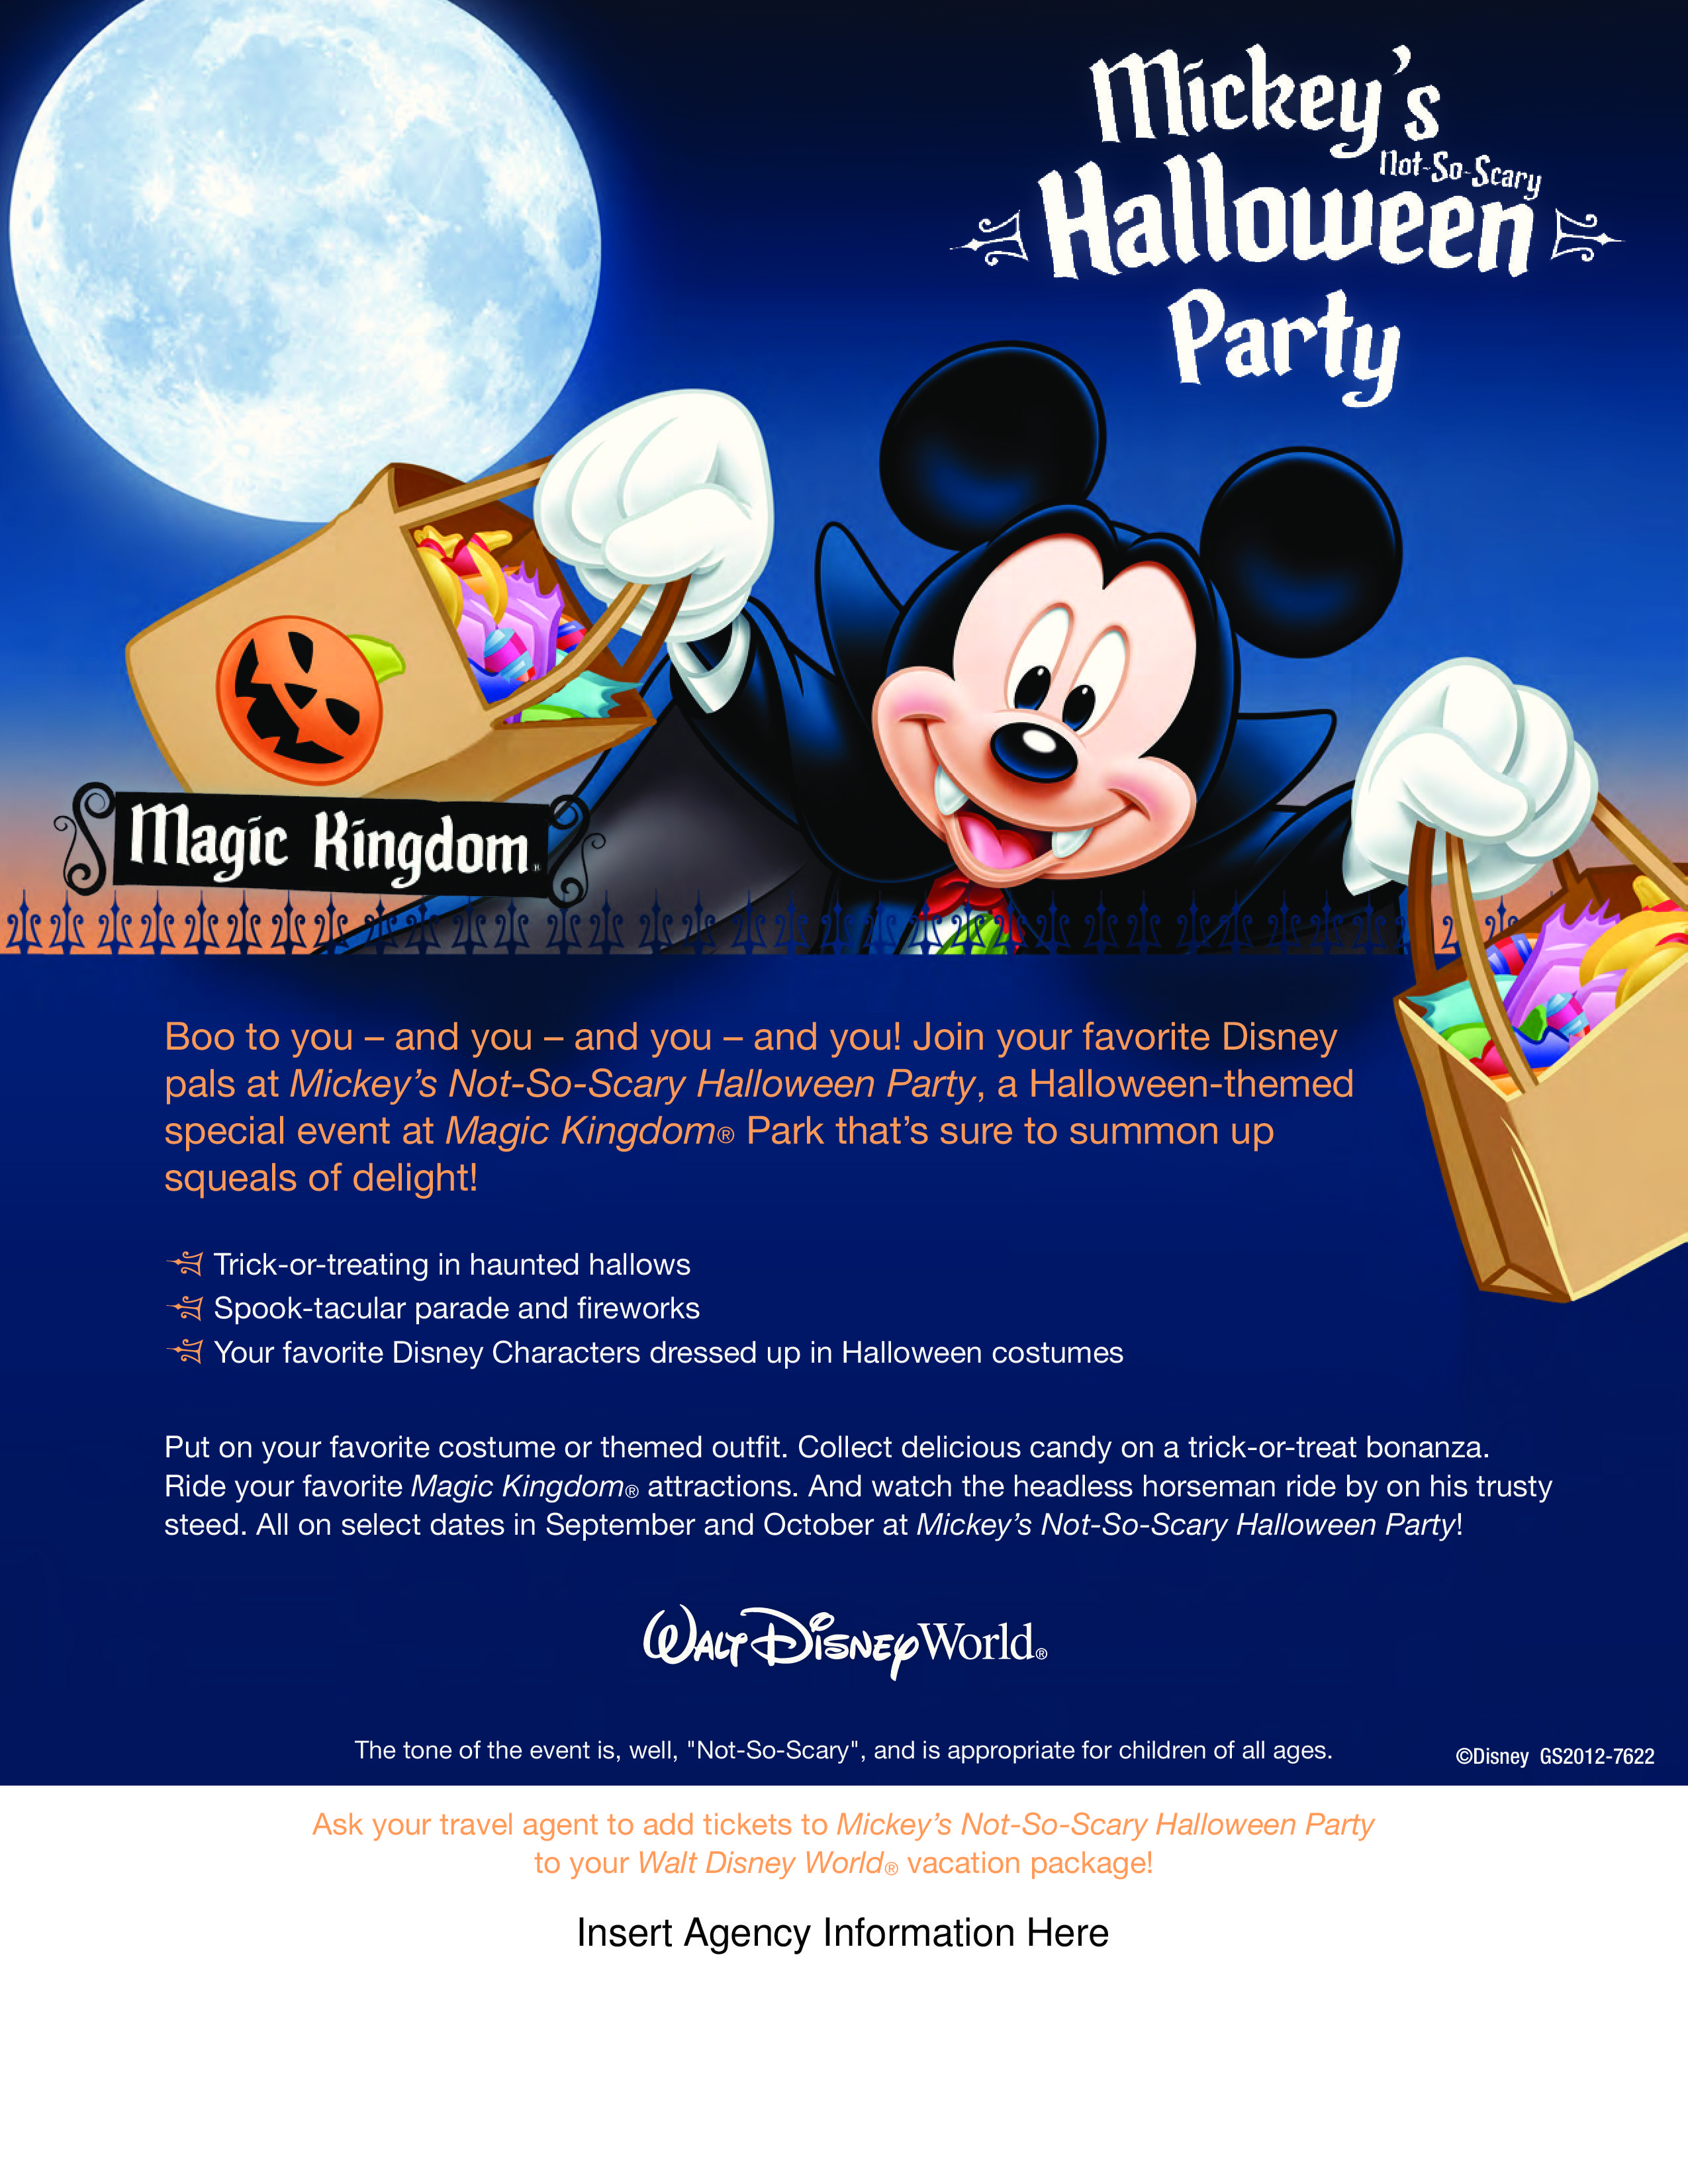 Mickey's Merry Not So Scary Halloween Party! I can get you tickets ...